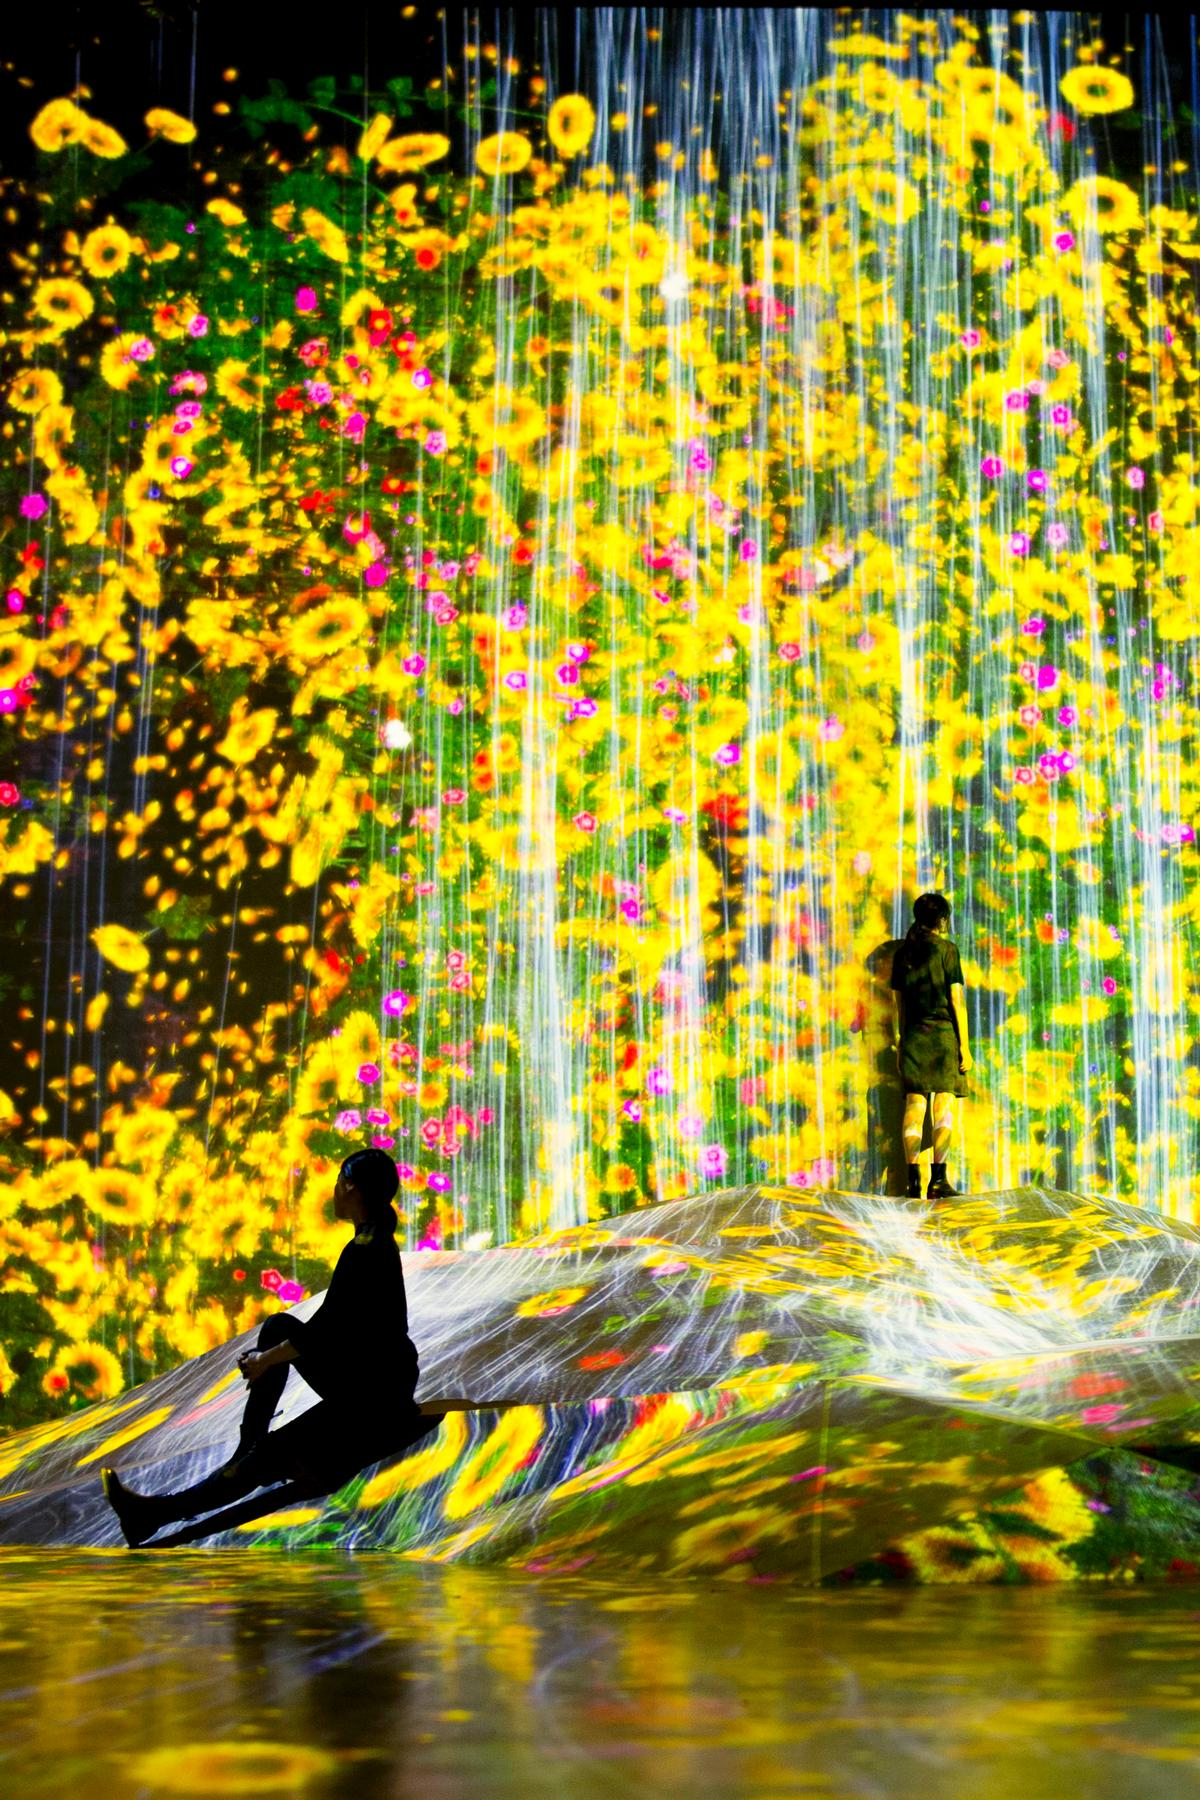 The attraction has been designed to boost Tokyo's cultural offering ahead of the 2020 Olympics / teamLab Borderless